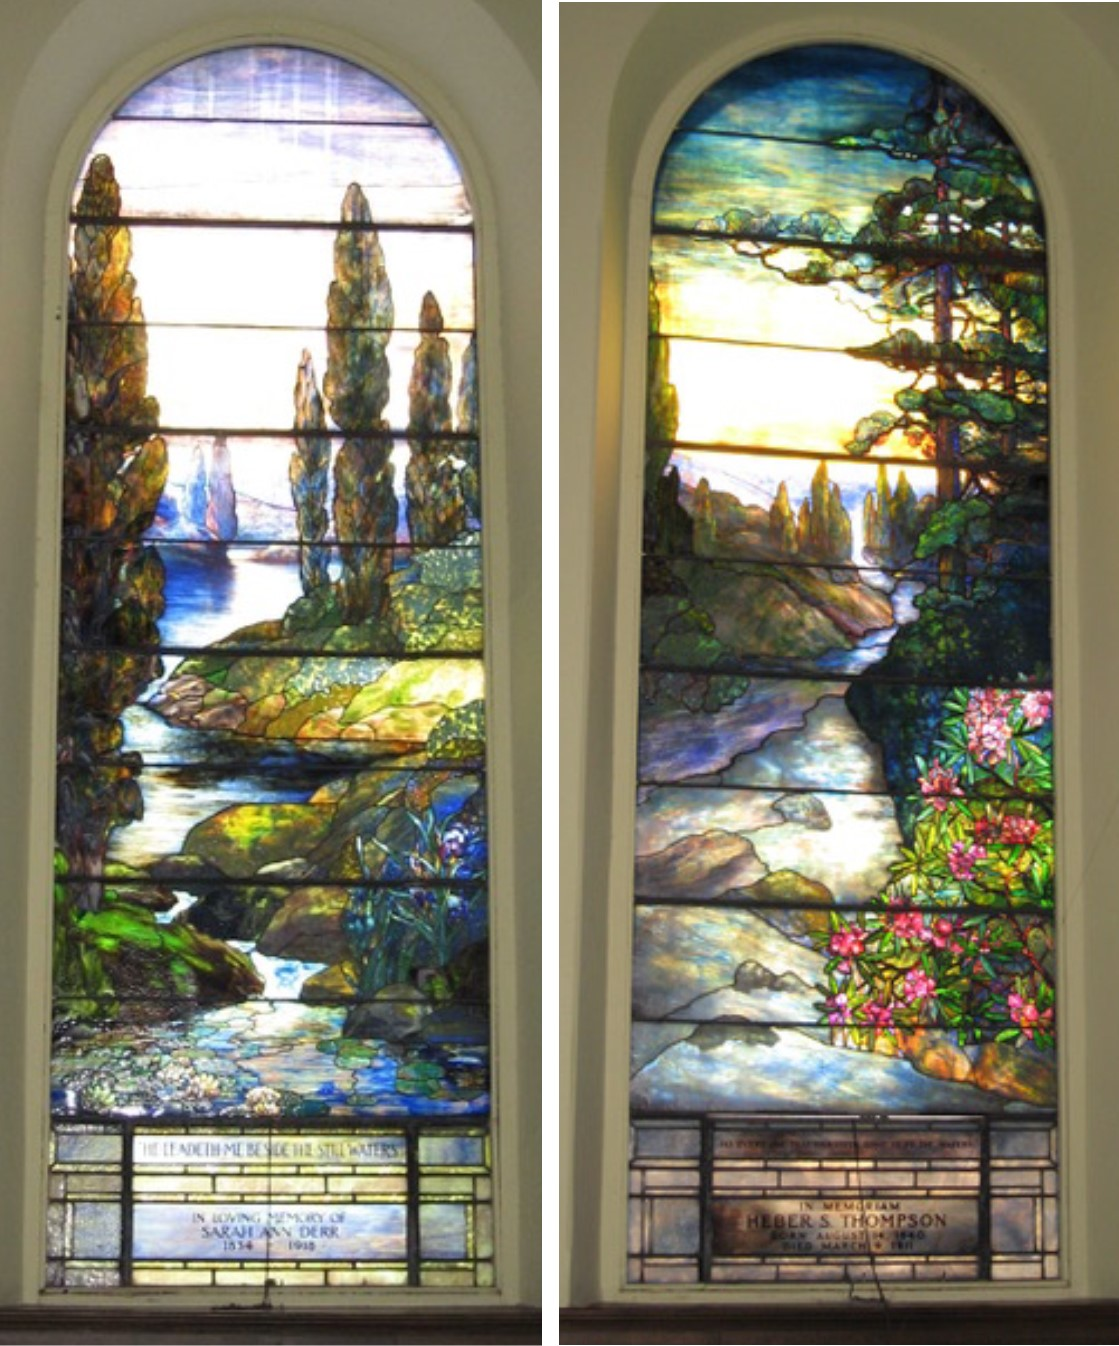 Sale Of Rare Stained Glass Tiffany Windows Helps United Church With Improvements Programs Synod Of The Trinity